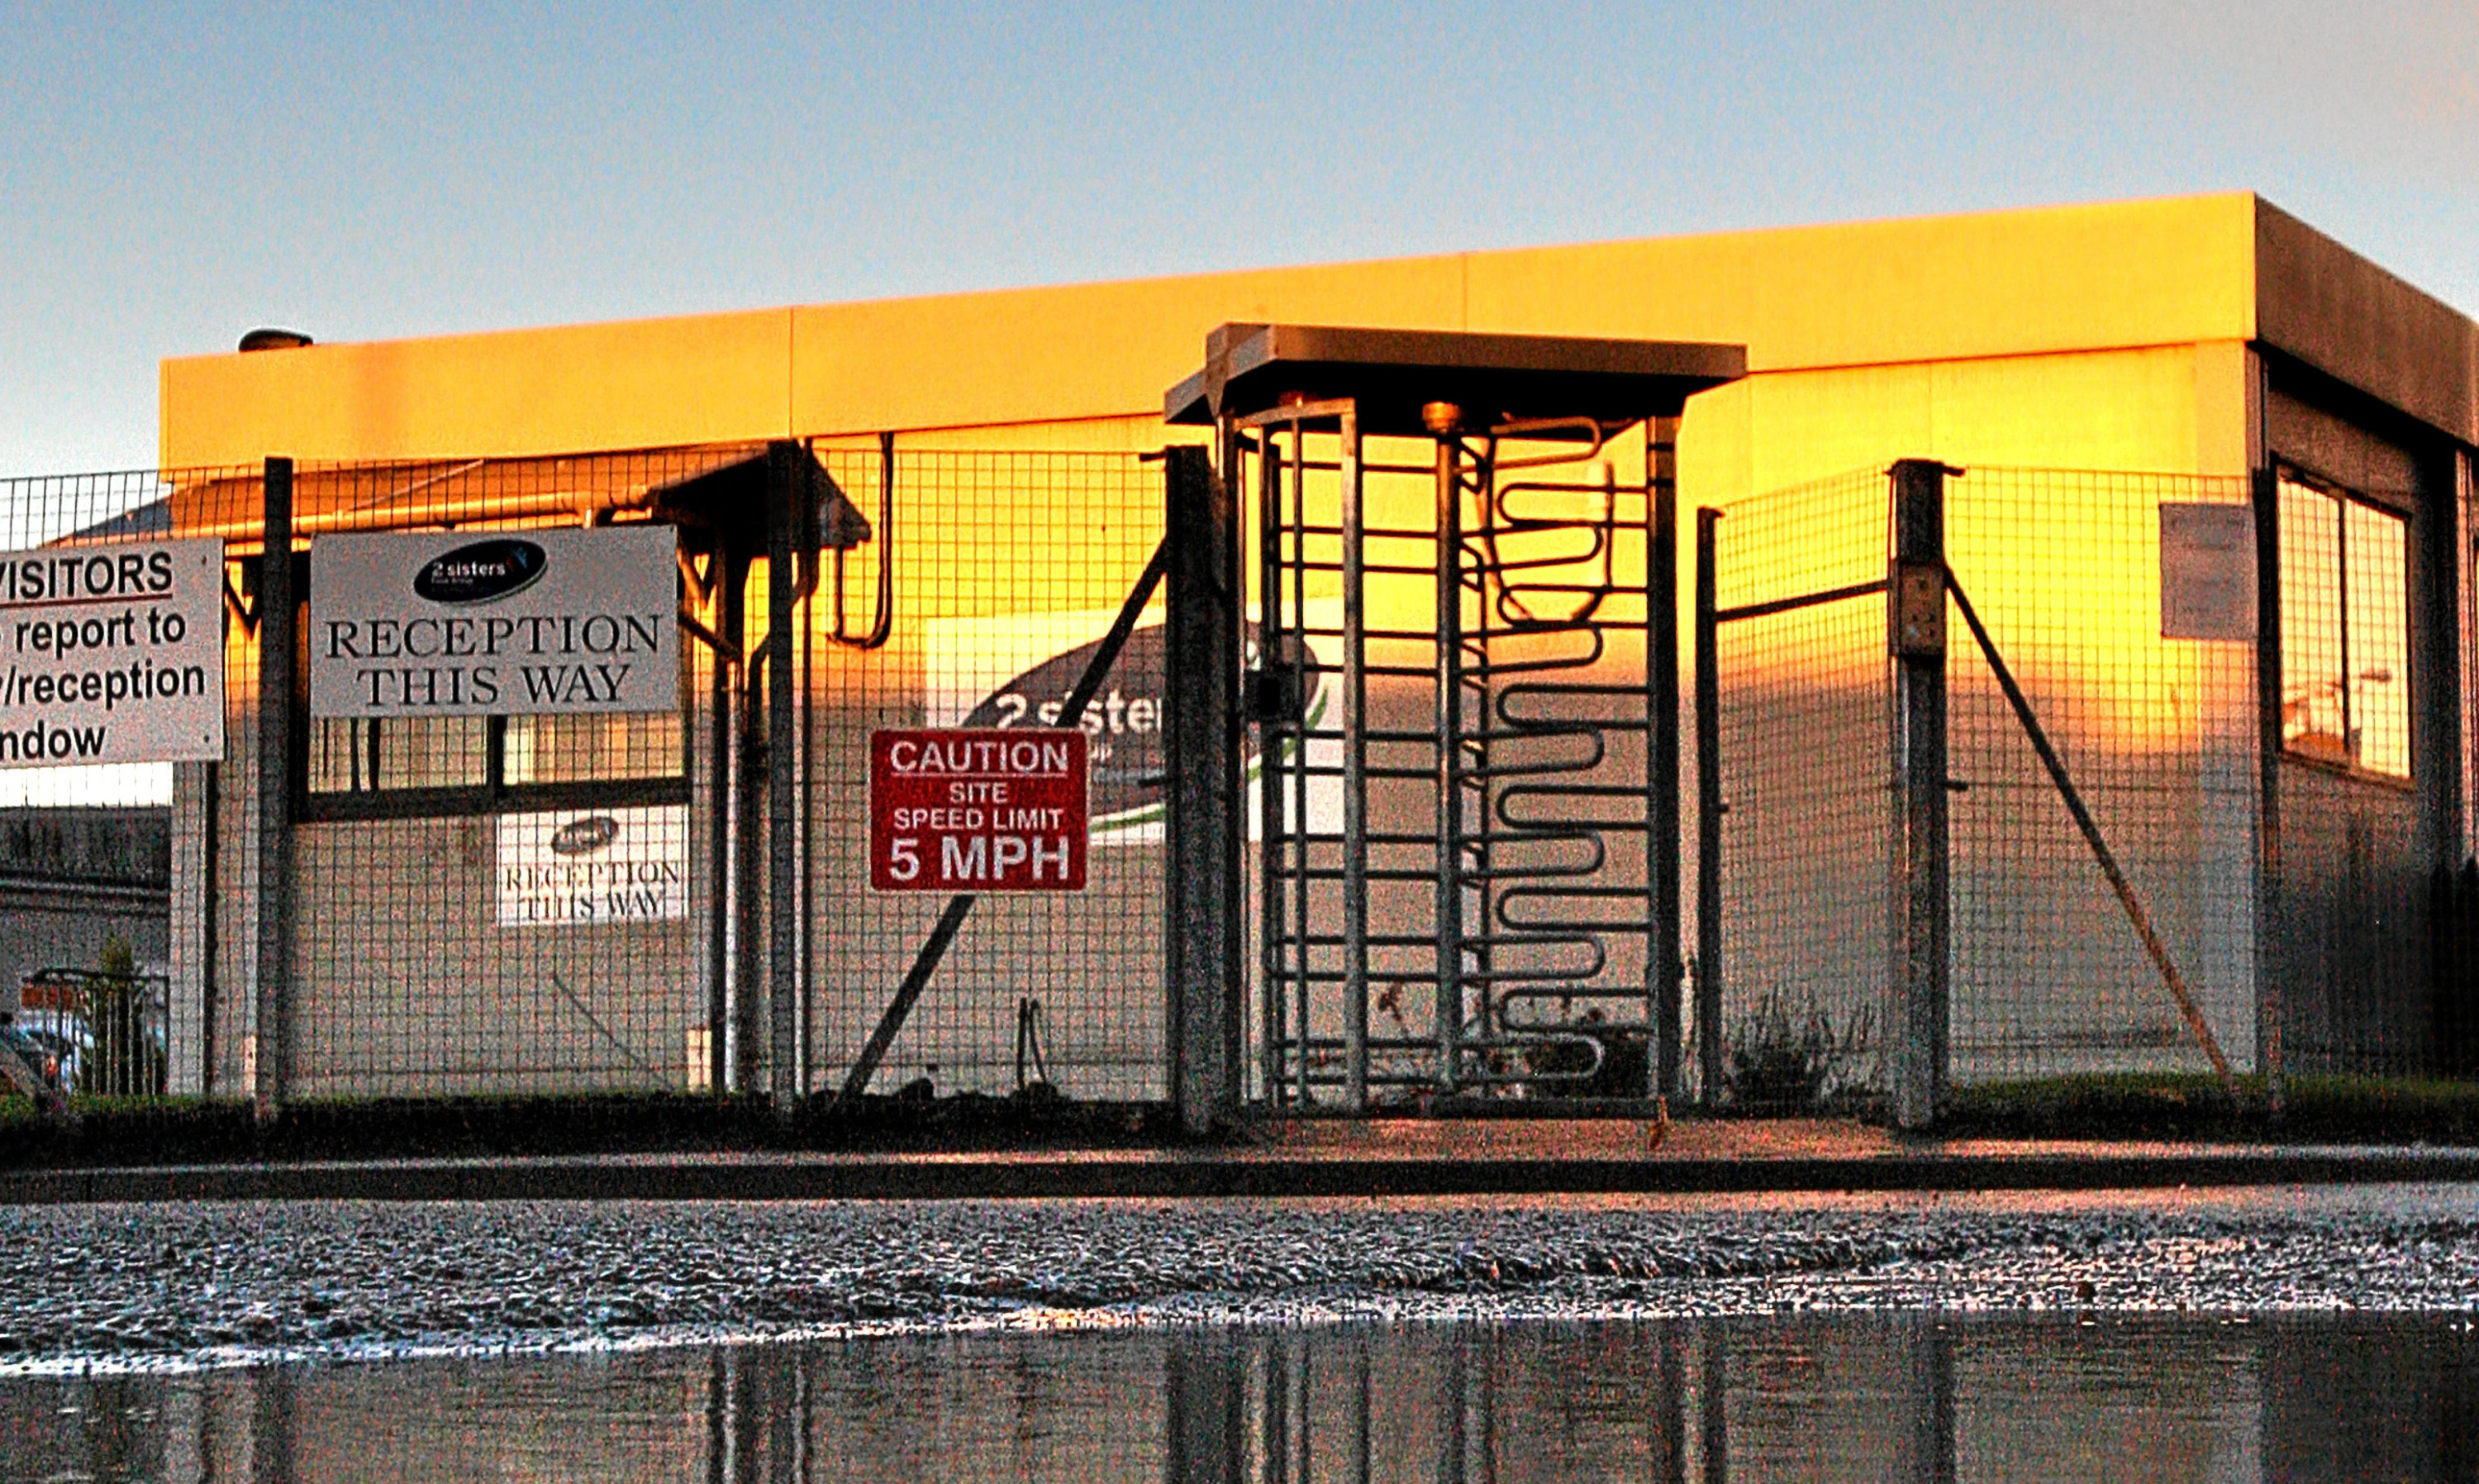 2 Sisters chicken processing plant in Coupar Angus